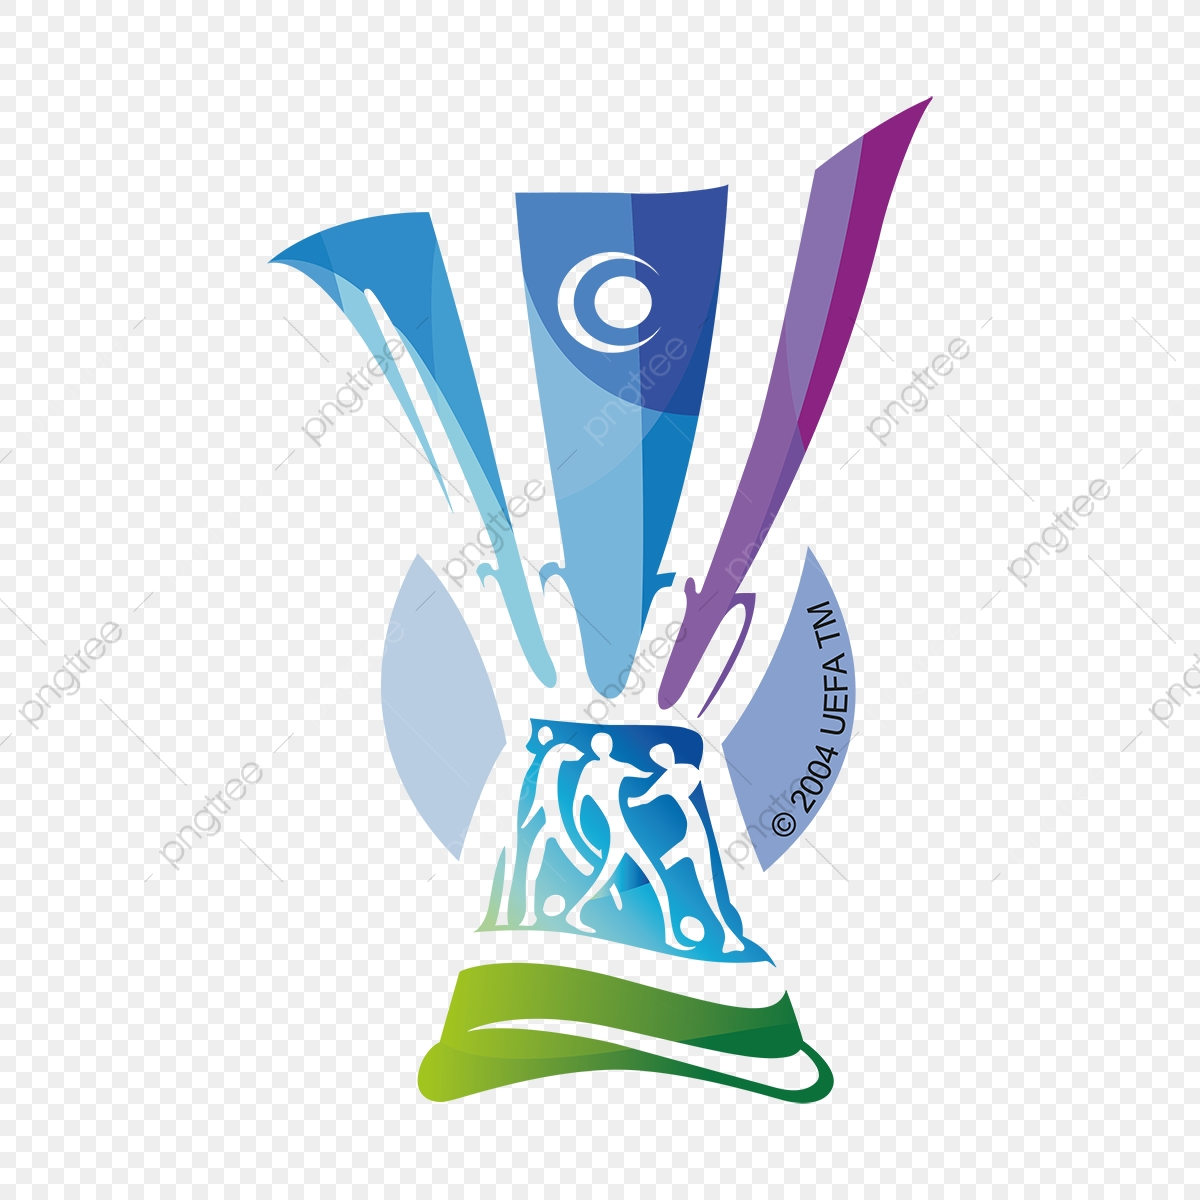 champions league uefa logo logo icons league icons uefa champions league png and vector with transparent background for free download https pngtree com freepng champions league uefa logo 3643132 html